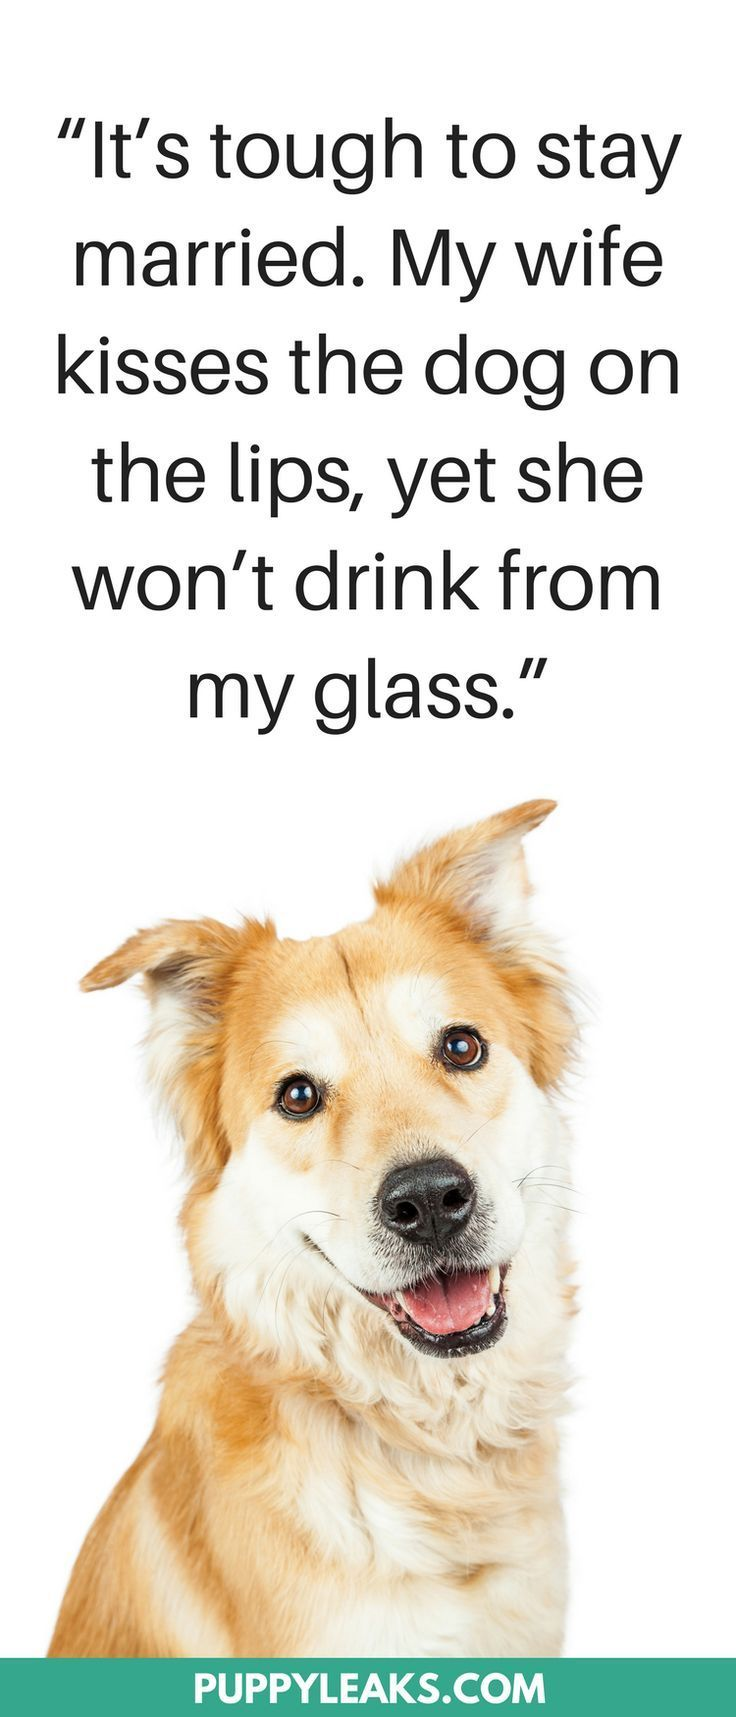 funny dog pictures with quotes